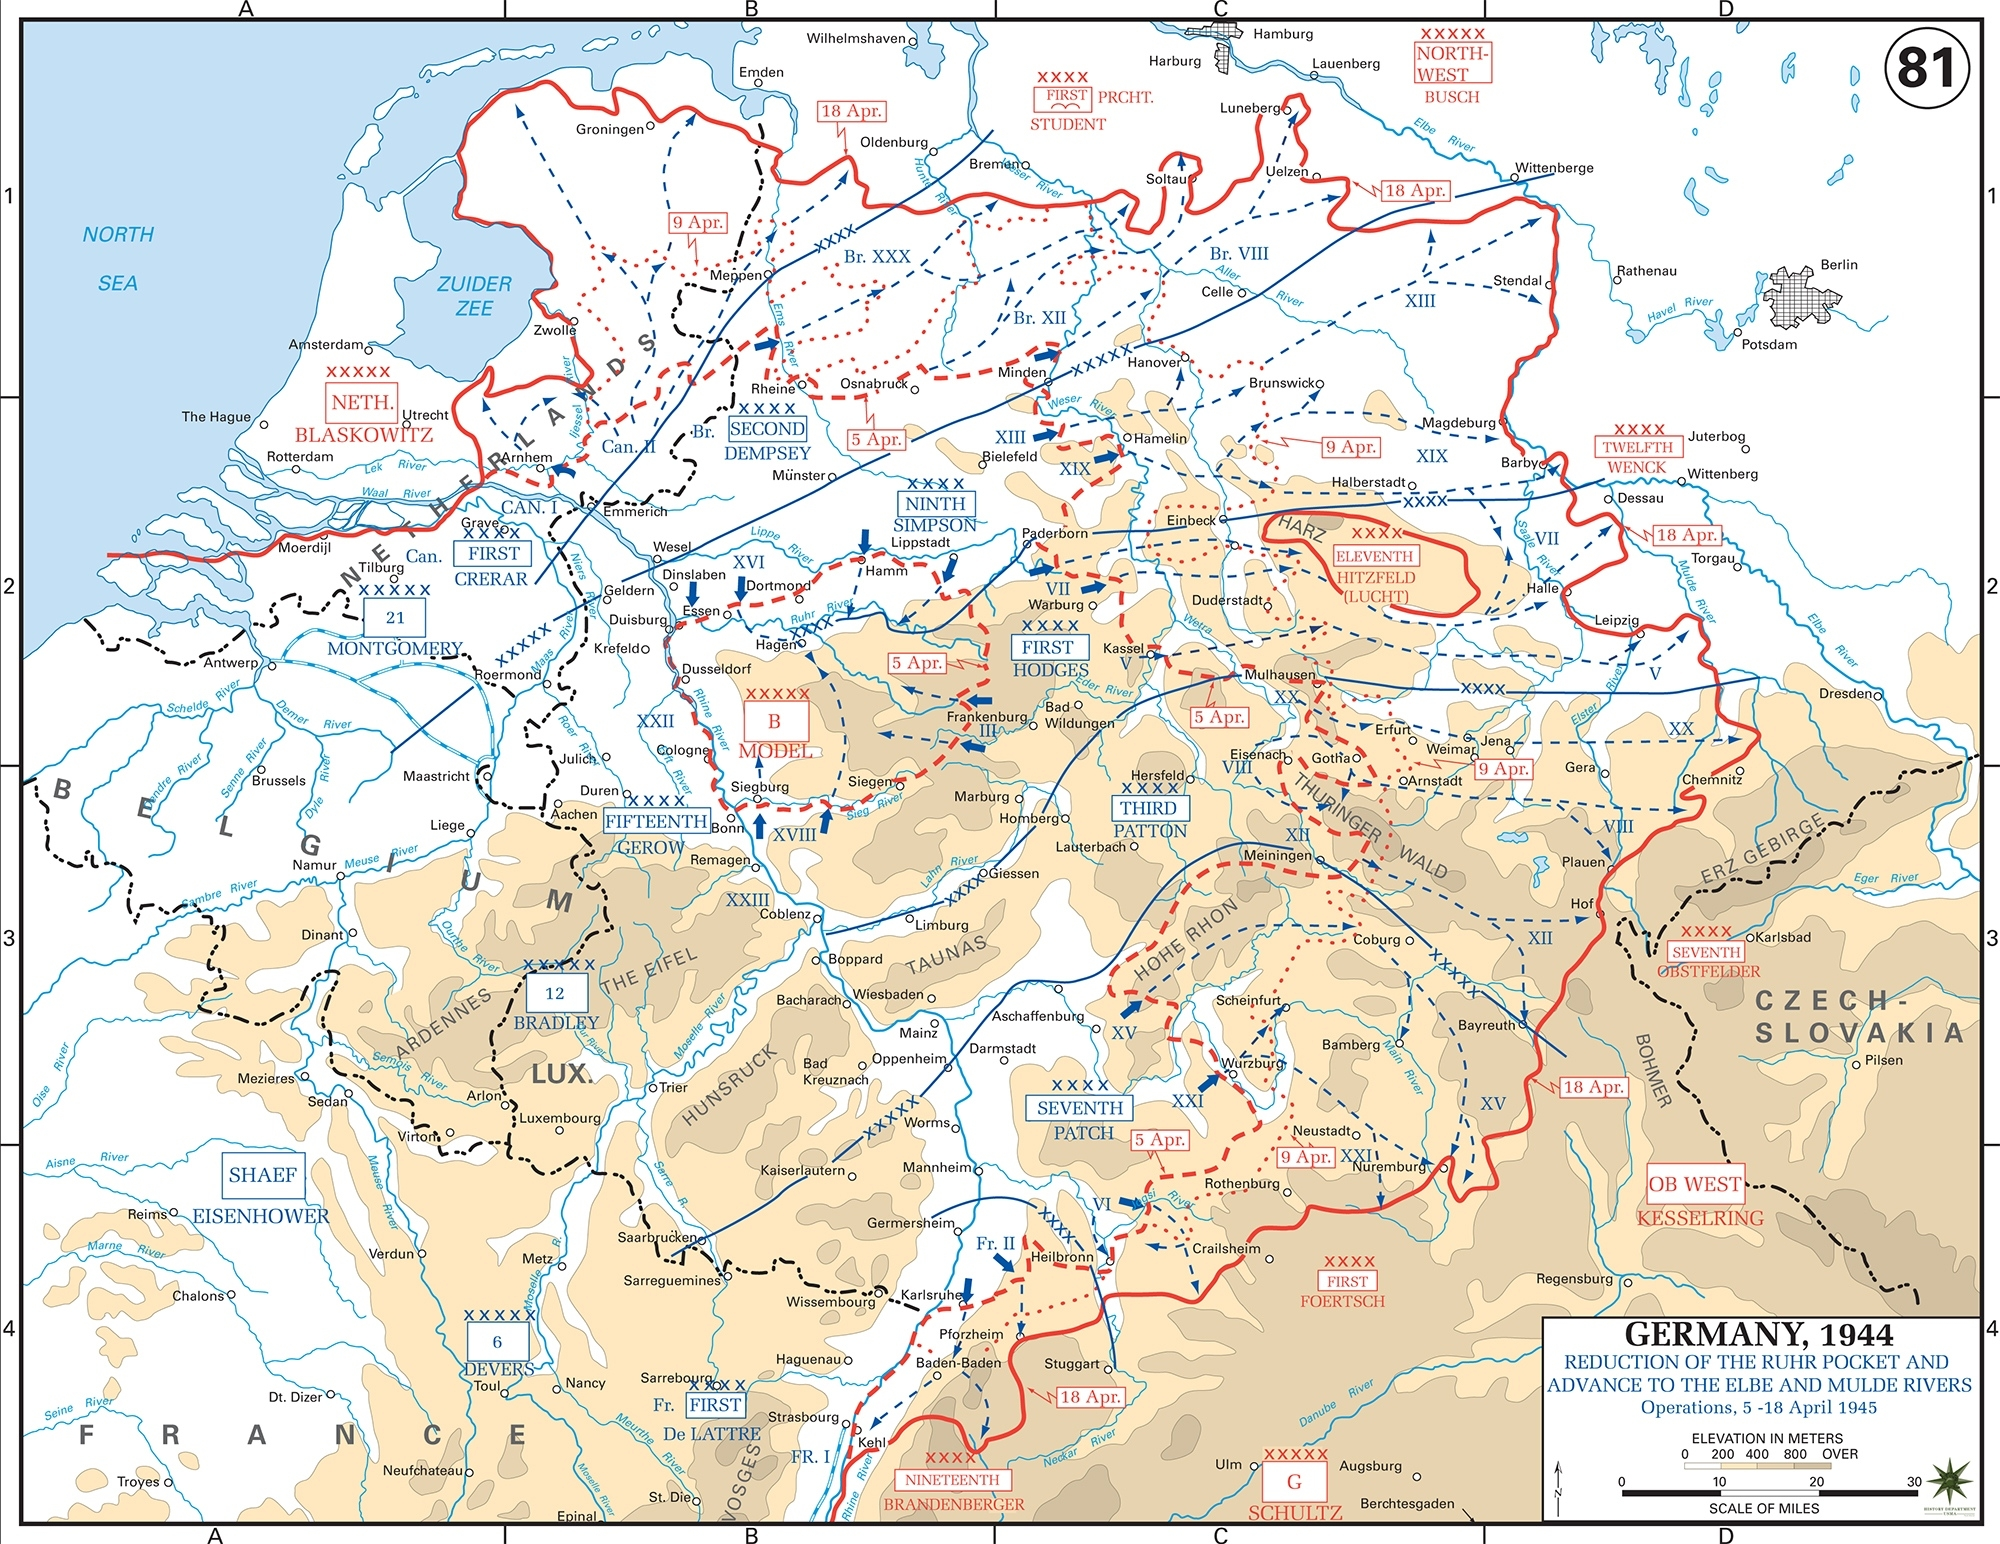 Map Of Wwii: Germany April 1945 pertaining to Map Of Germany During Ww2